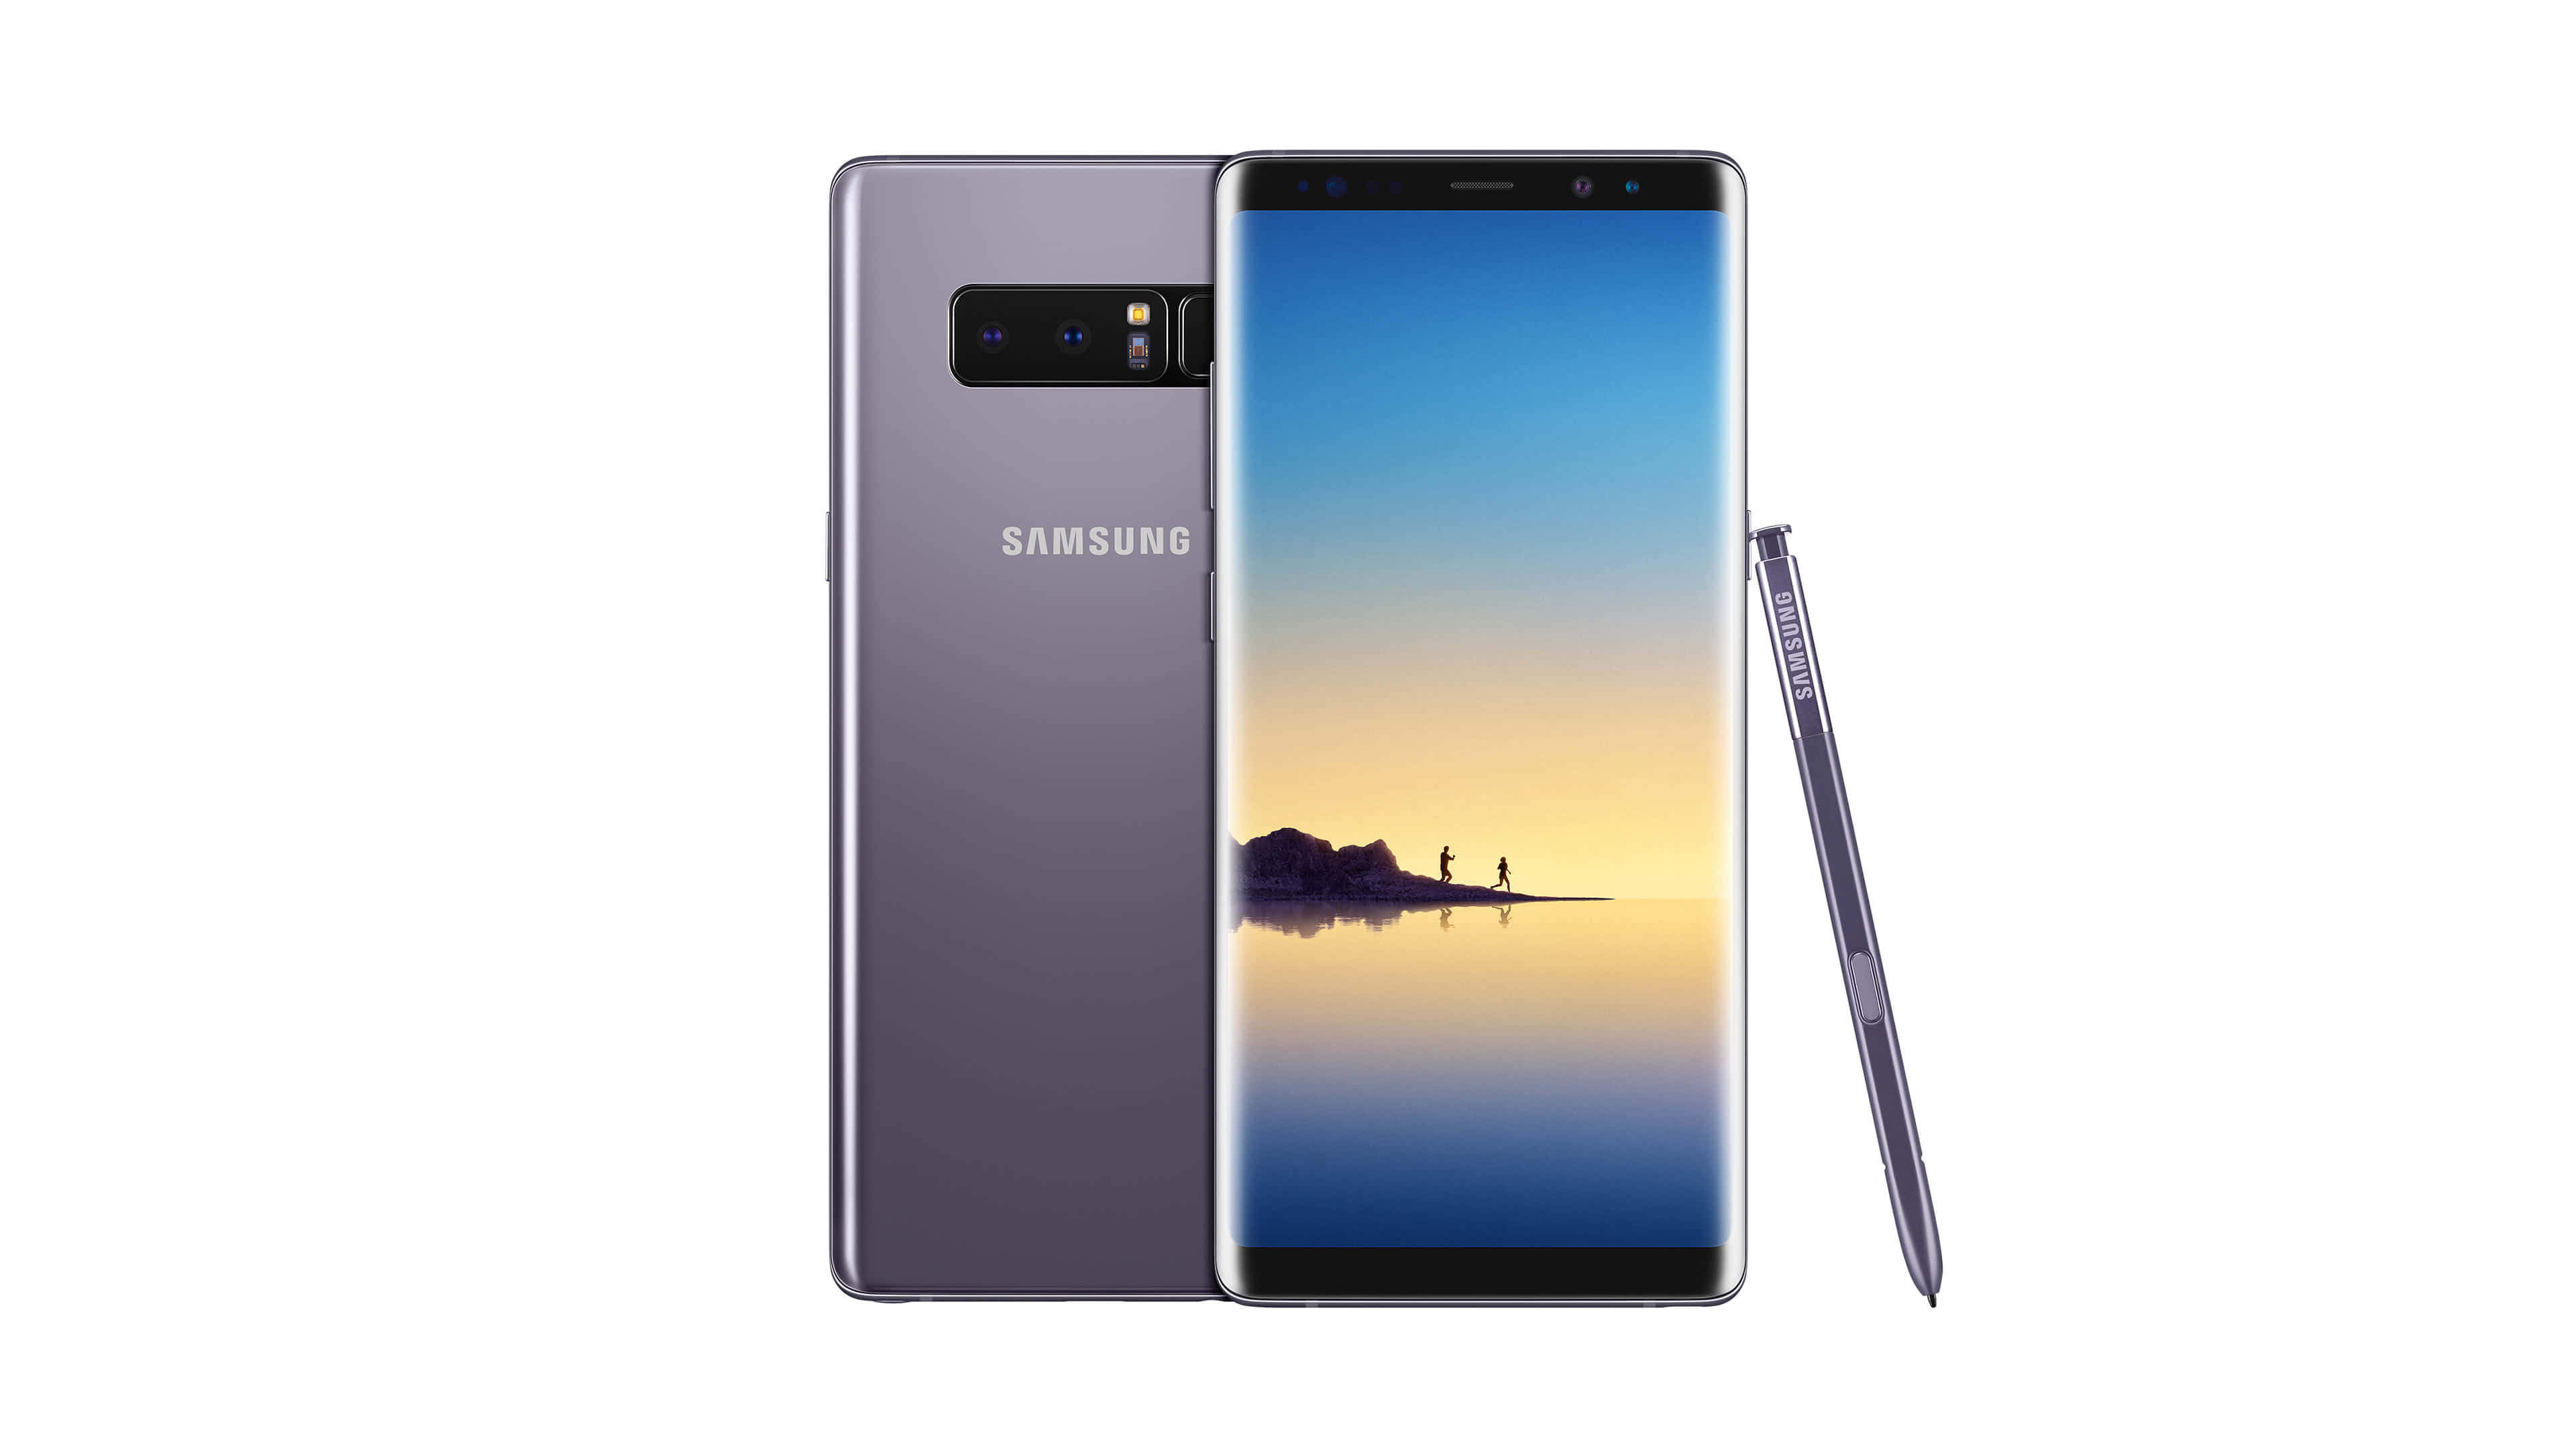 Samsung Galaxy Note 8 Uhd 4k Wallpaper Pixelz